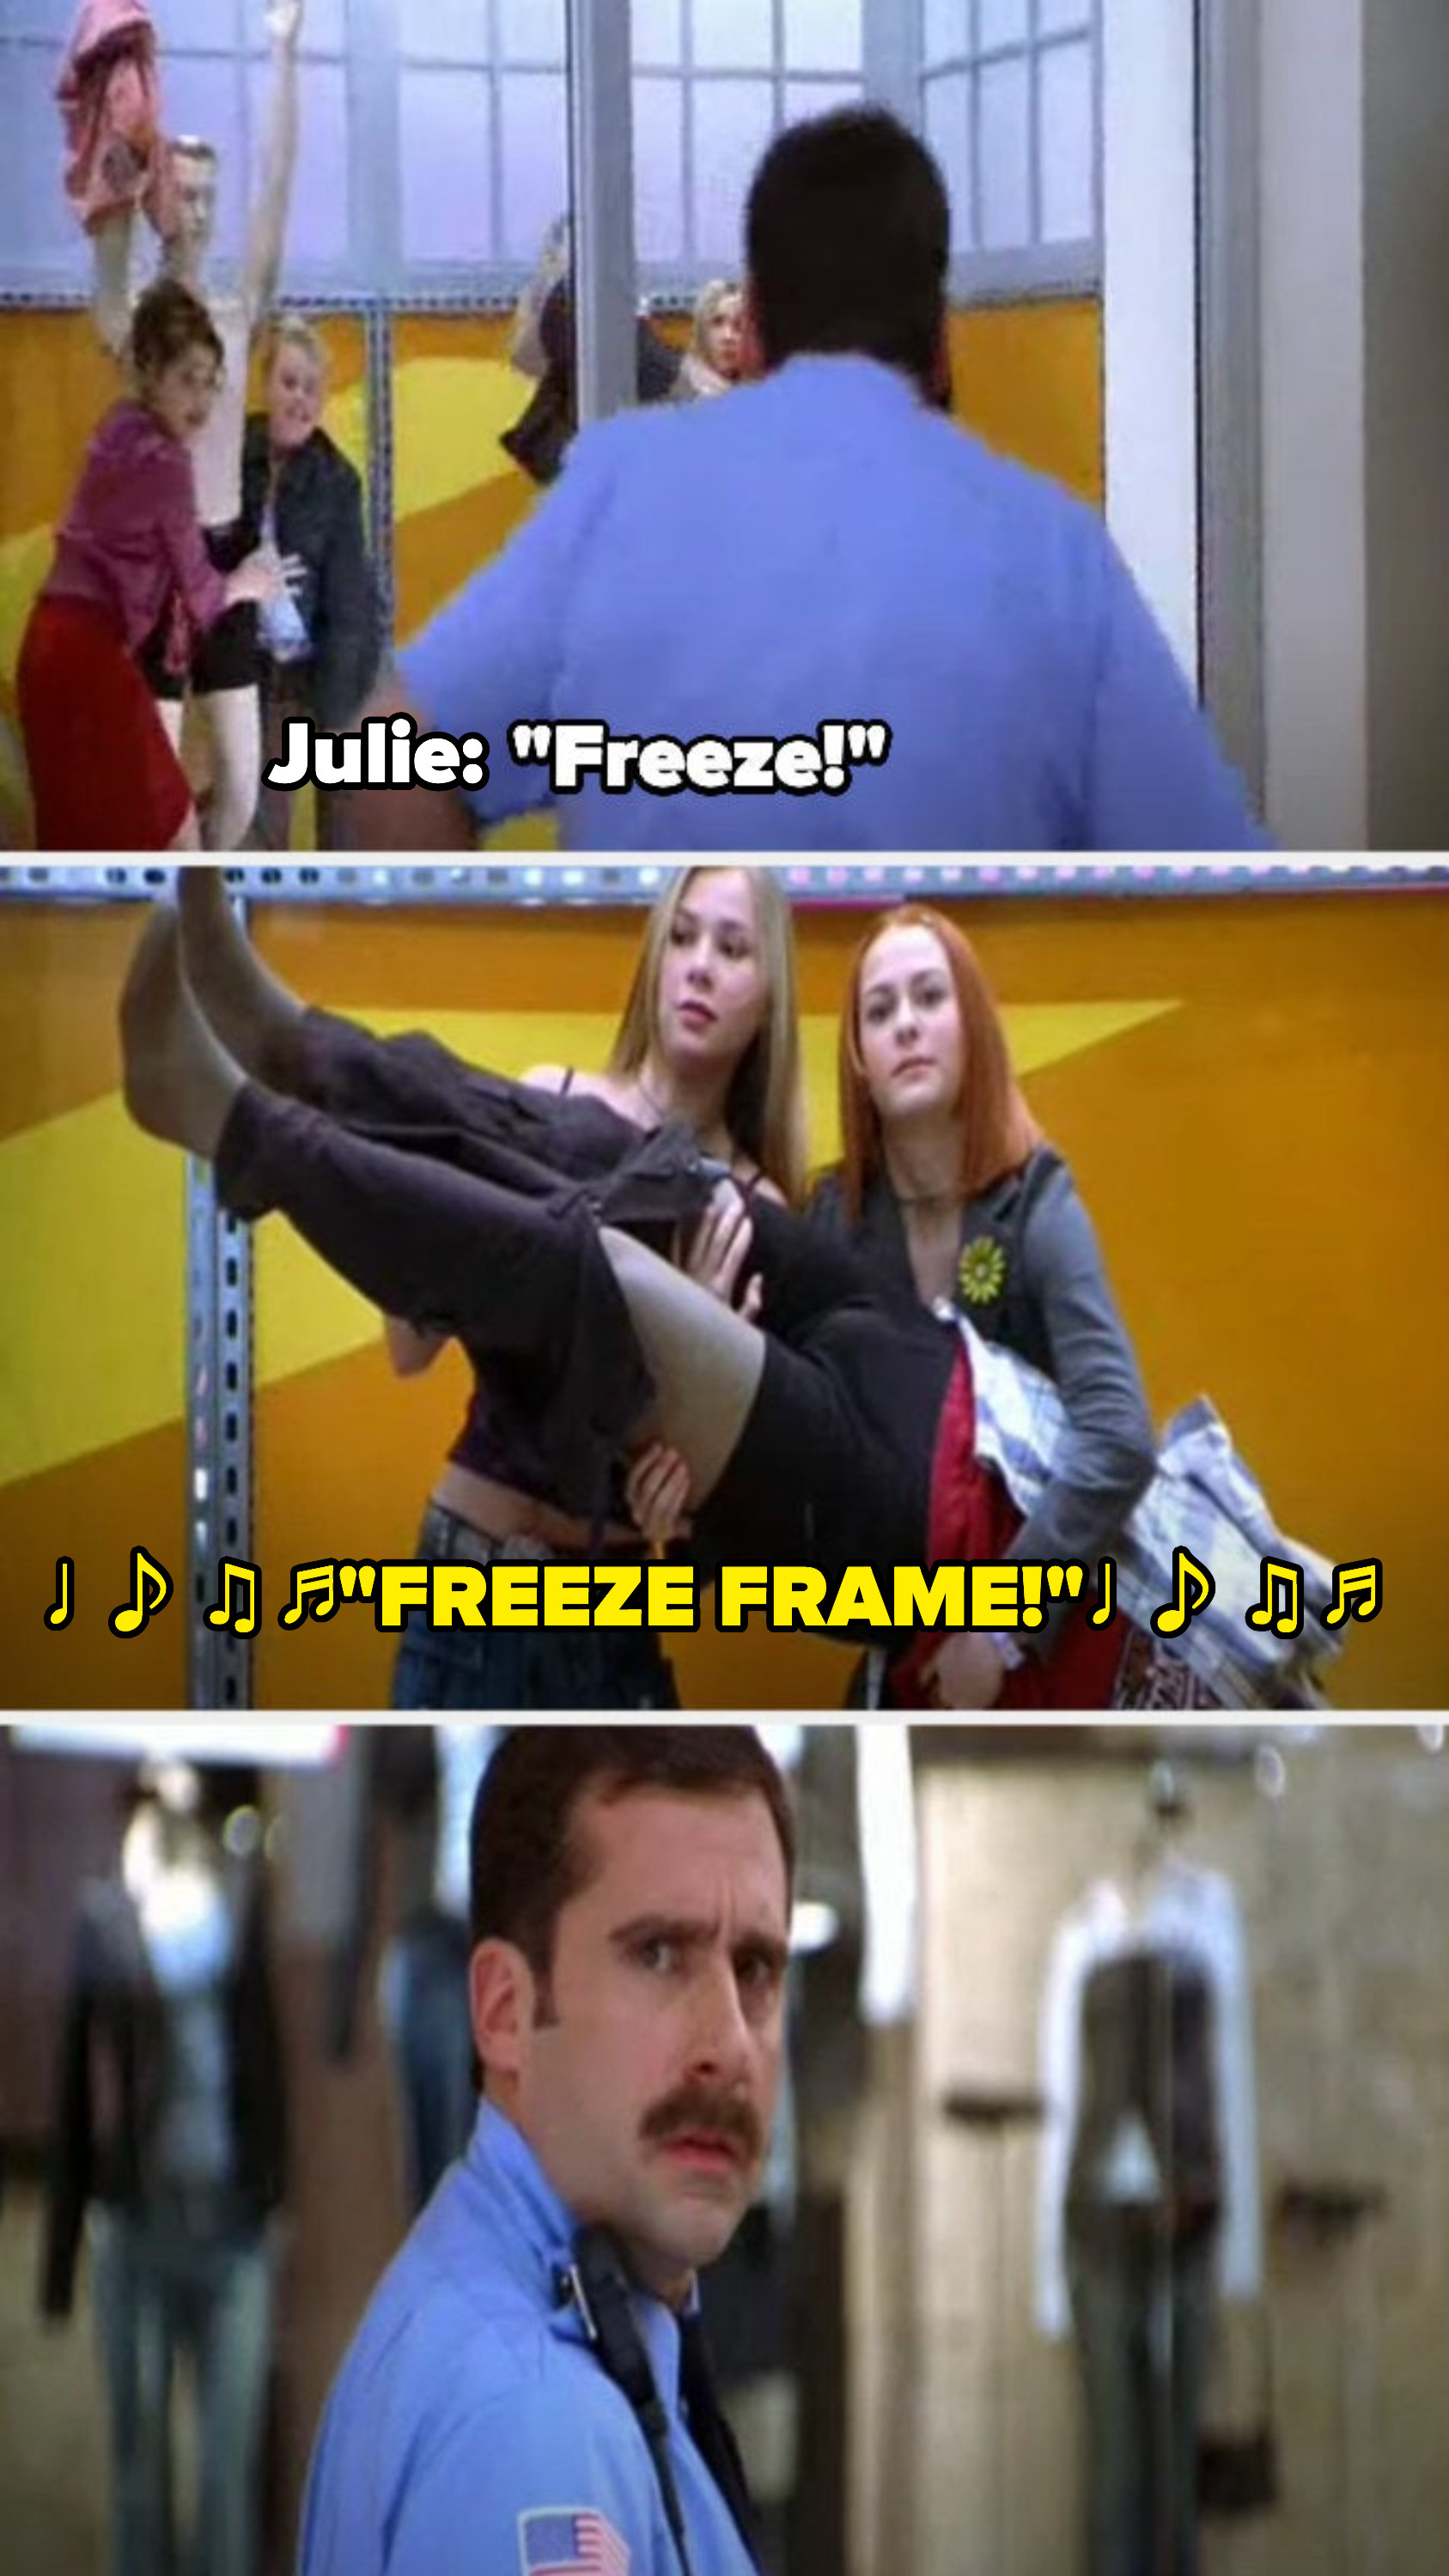 the security guard, played by Steve Carell, turns around to the store display window, where the girls are undressing mannequins, and they freeze